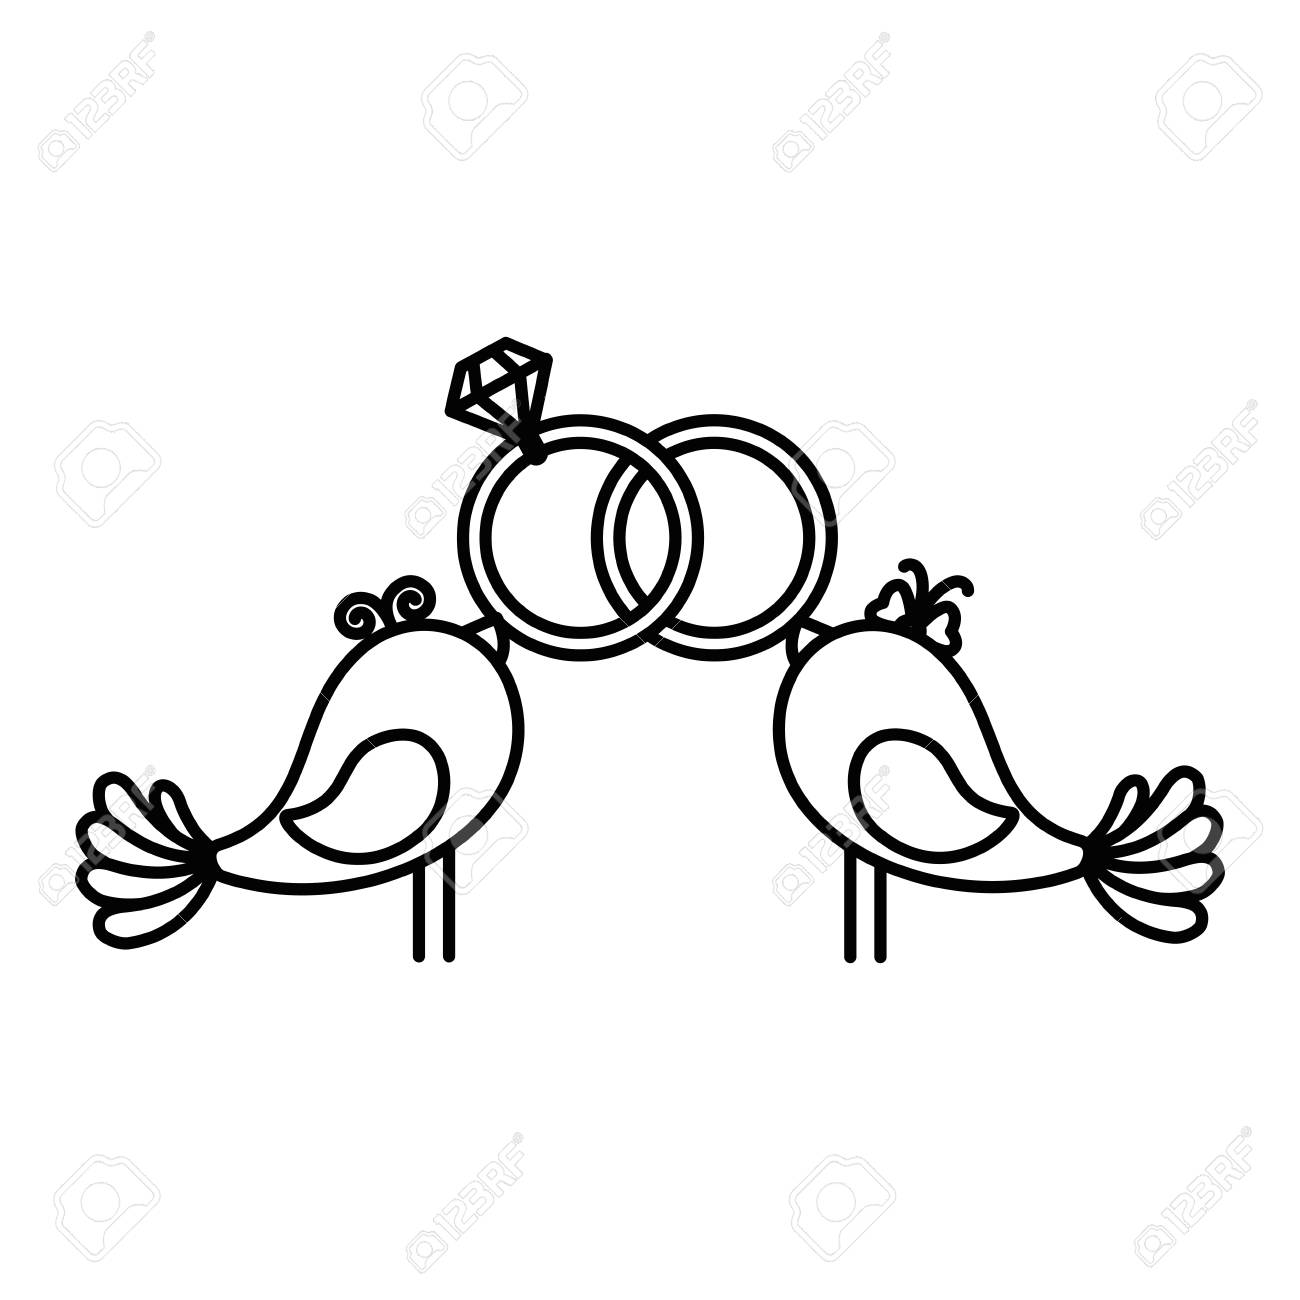 Cute Couple Of Doves With Wedding Rings Icon Over White Background Stock Vector